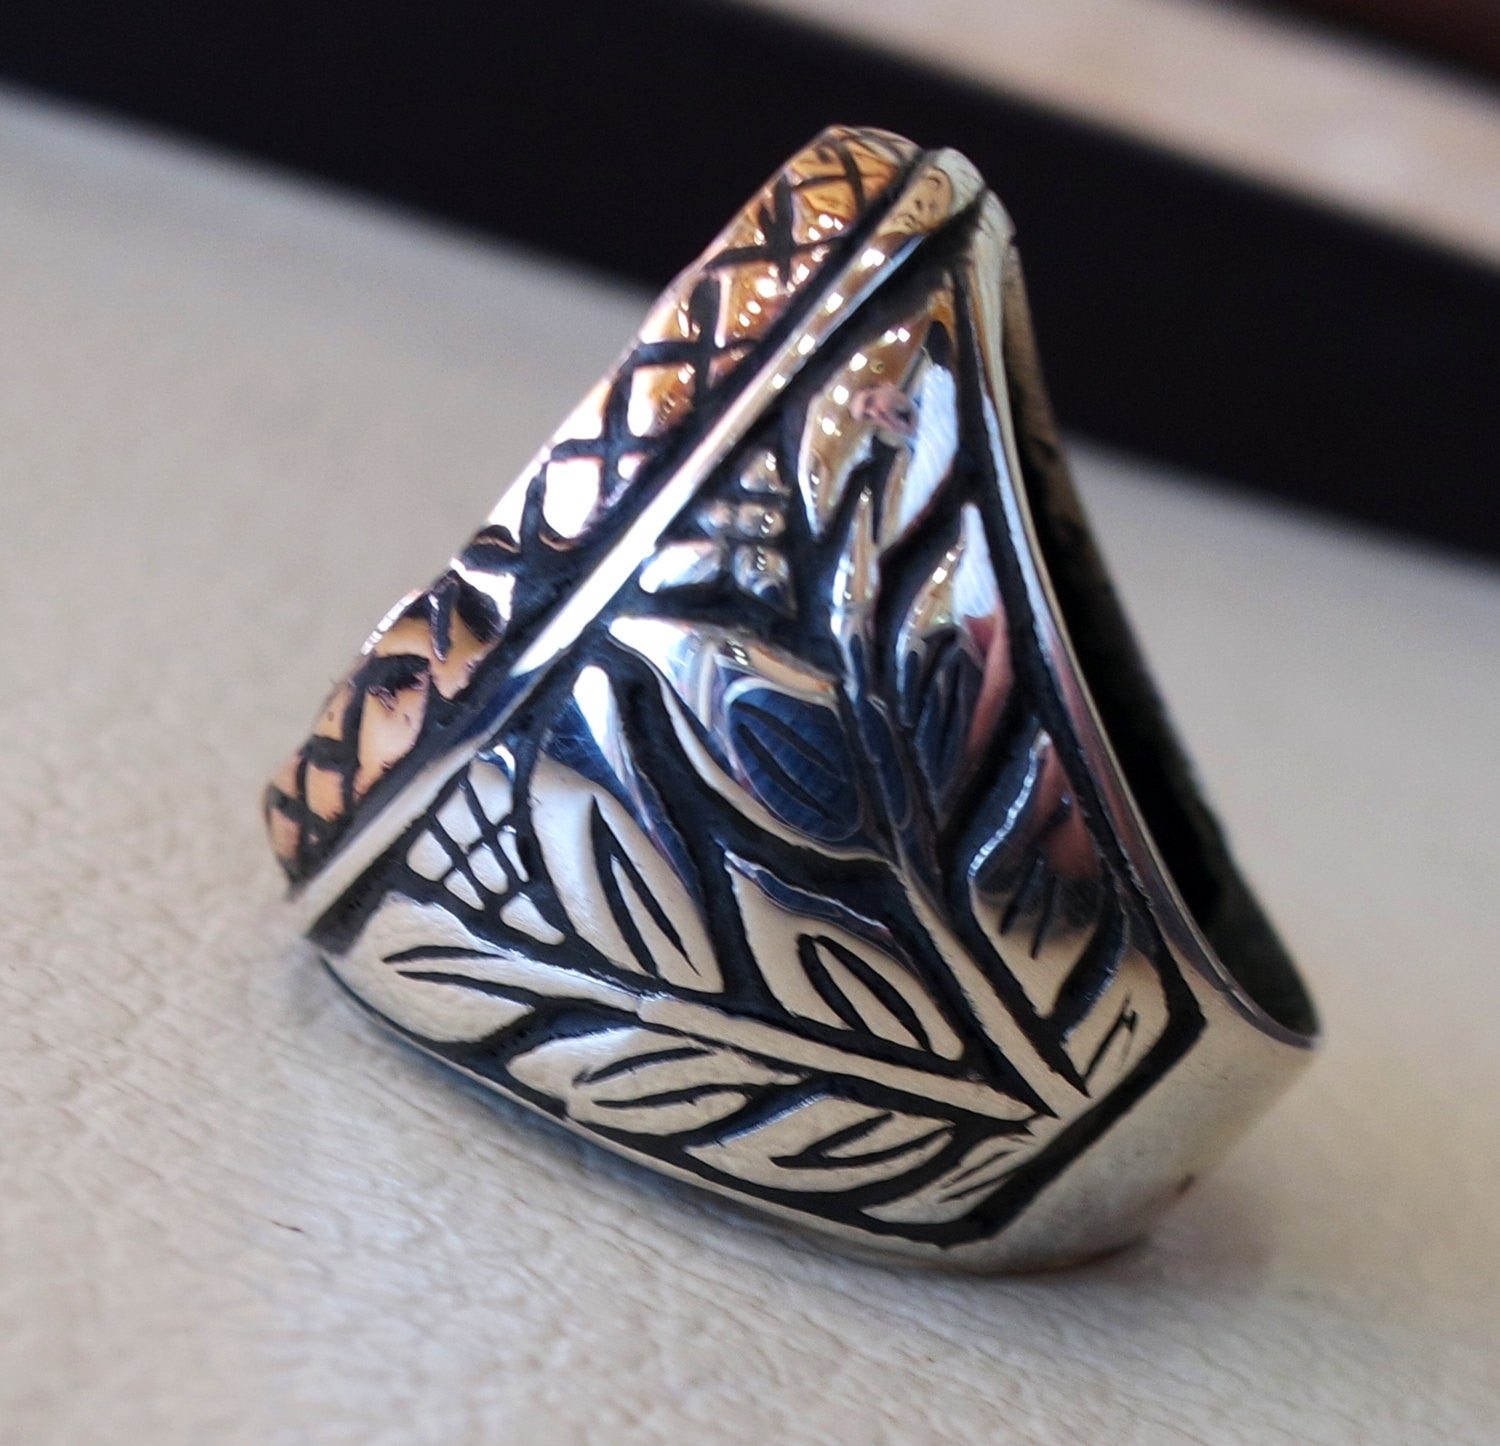 Big anchor sailor biker men ring heavy sterling silver 925 sea symbol flowers and bronze handmade all sizes jewelry fast shipping